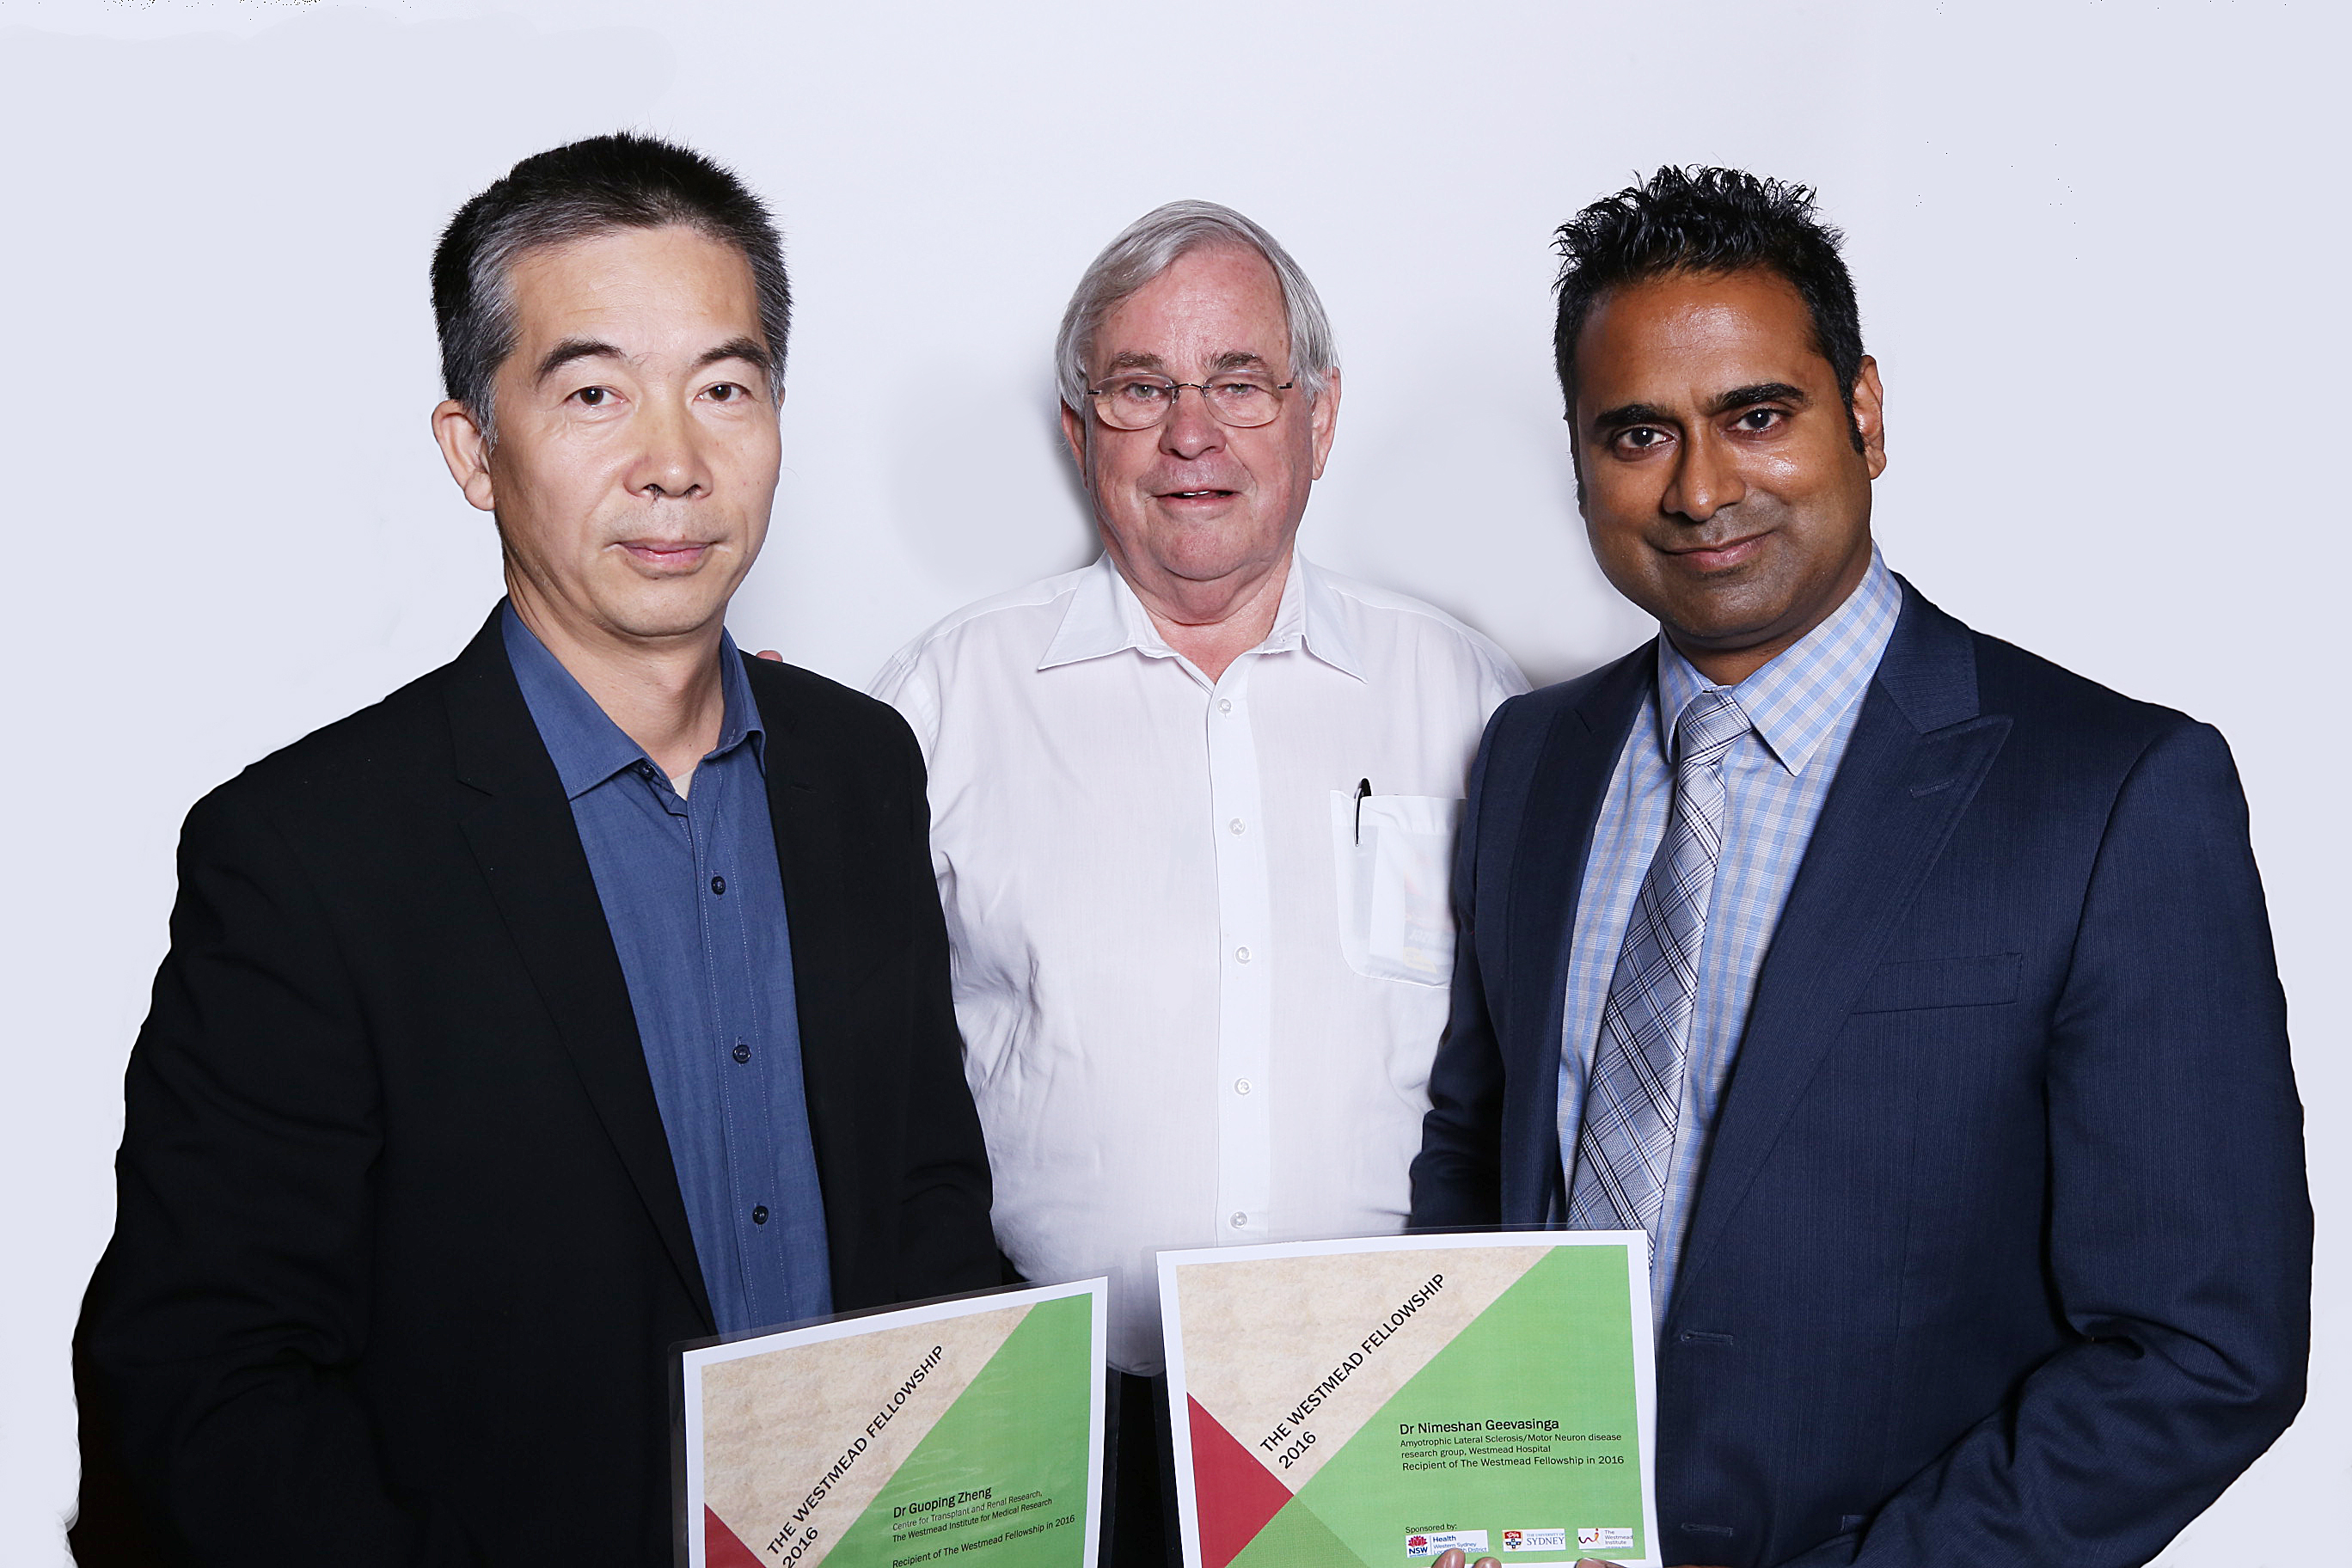 WSLHD Research and Education director Emeritus Professor Stephen Leeder (centre) presents Dr Zheng (left) and Dr Geevasinga